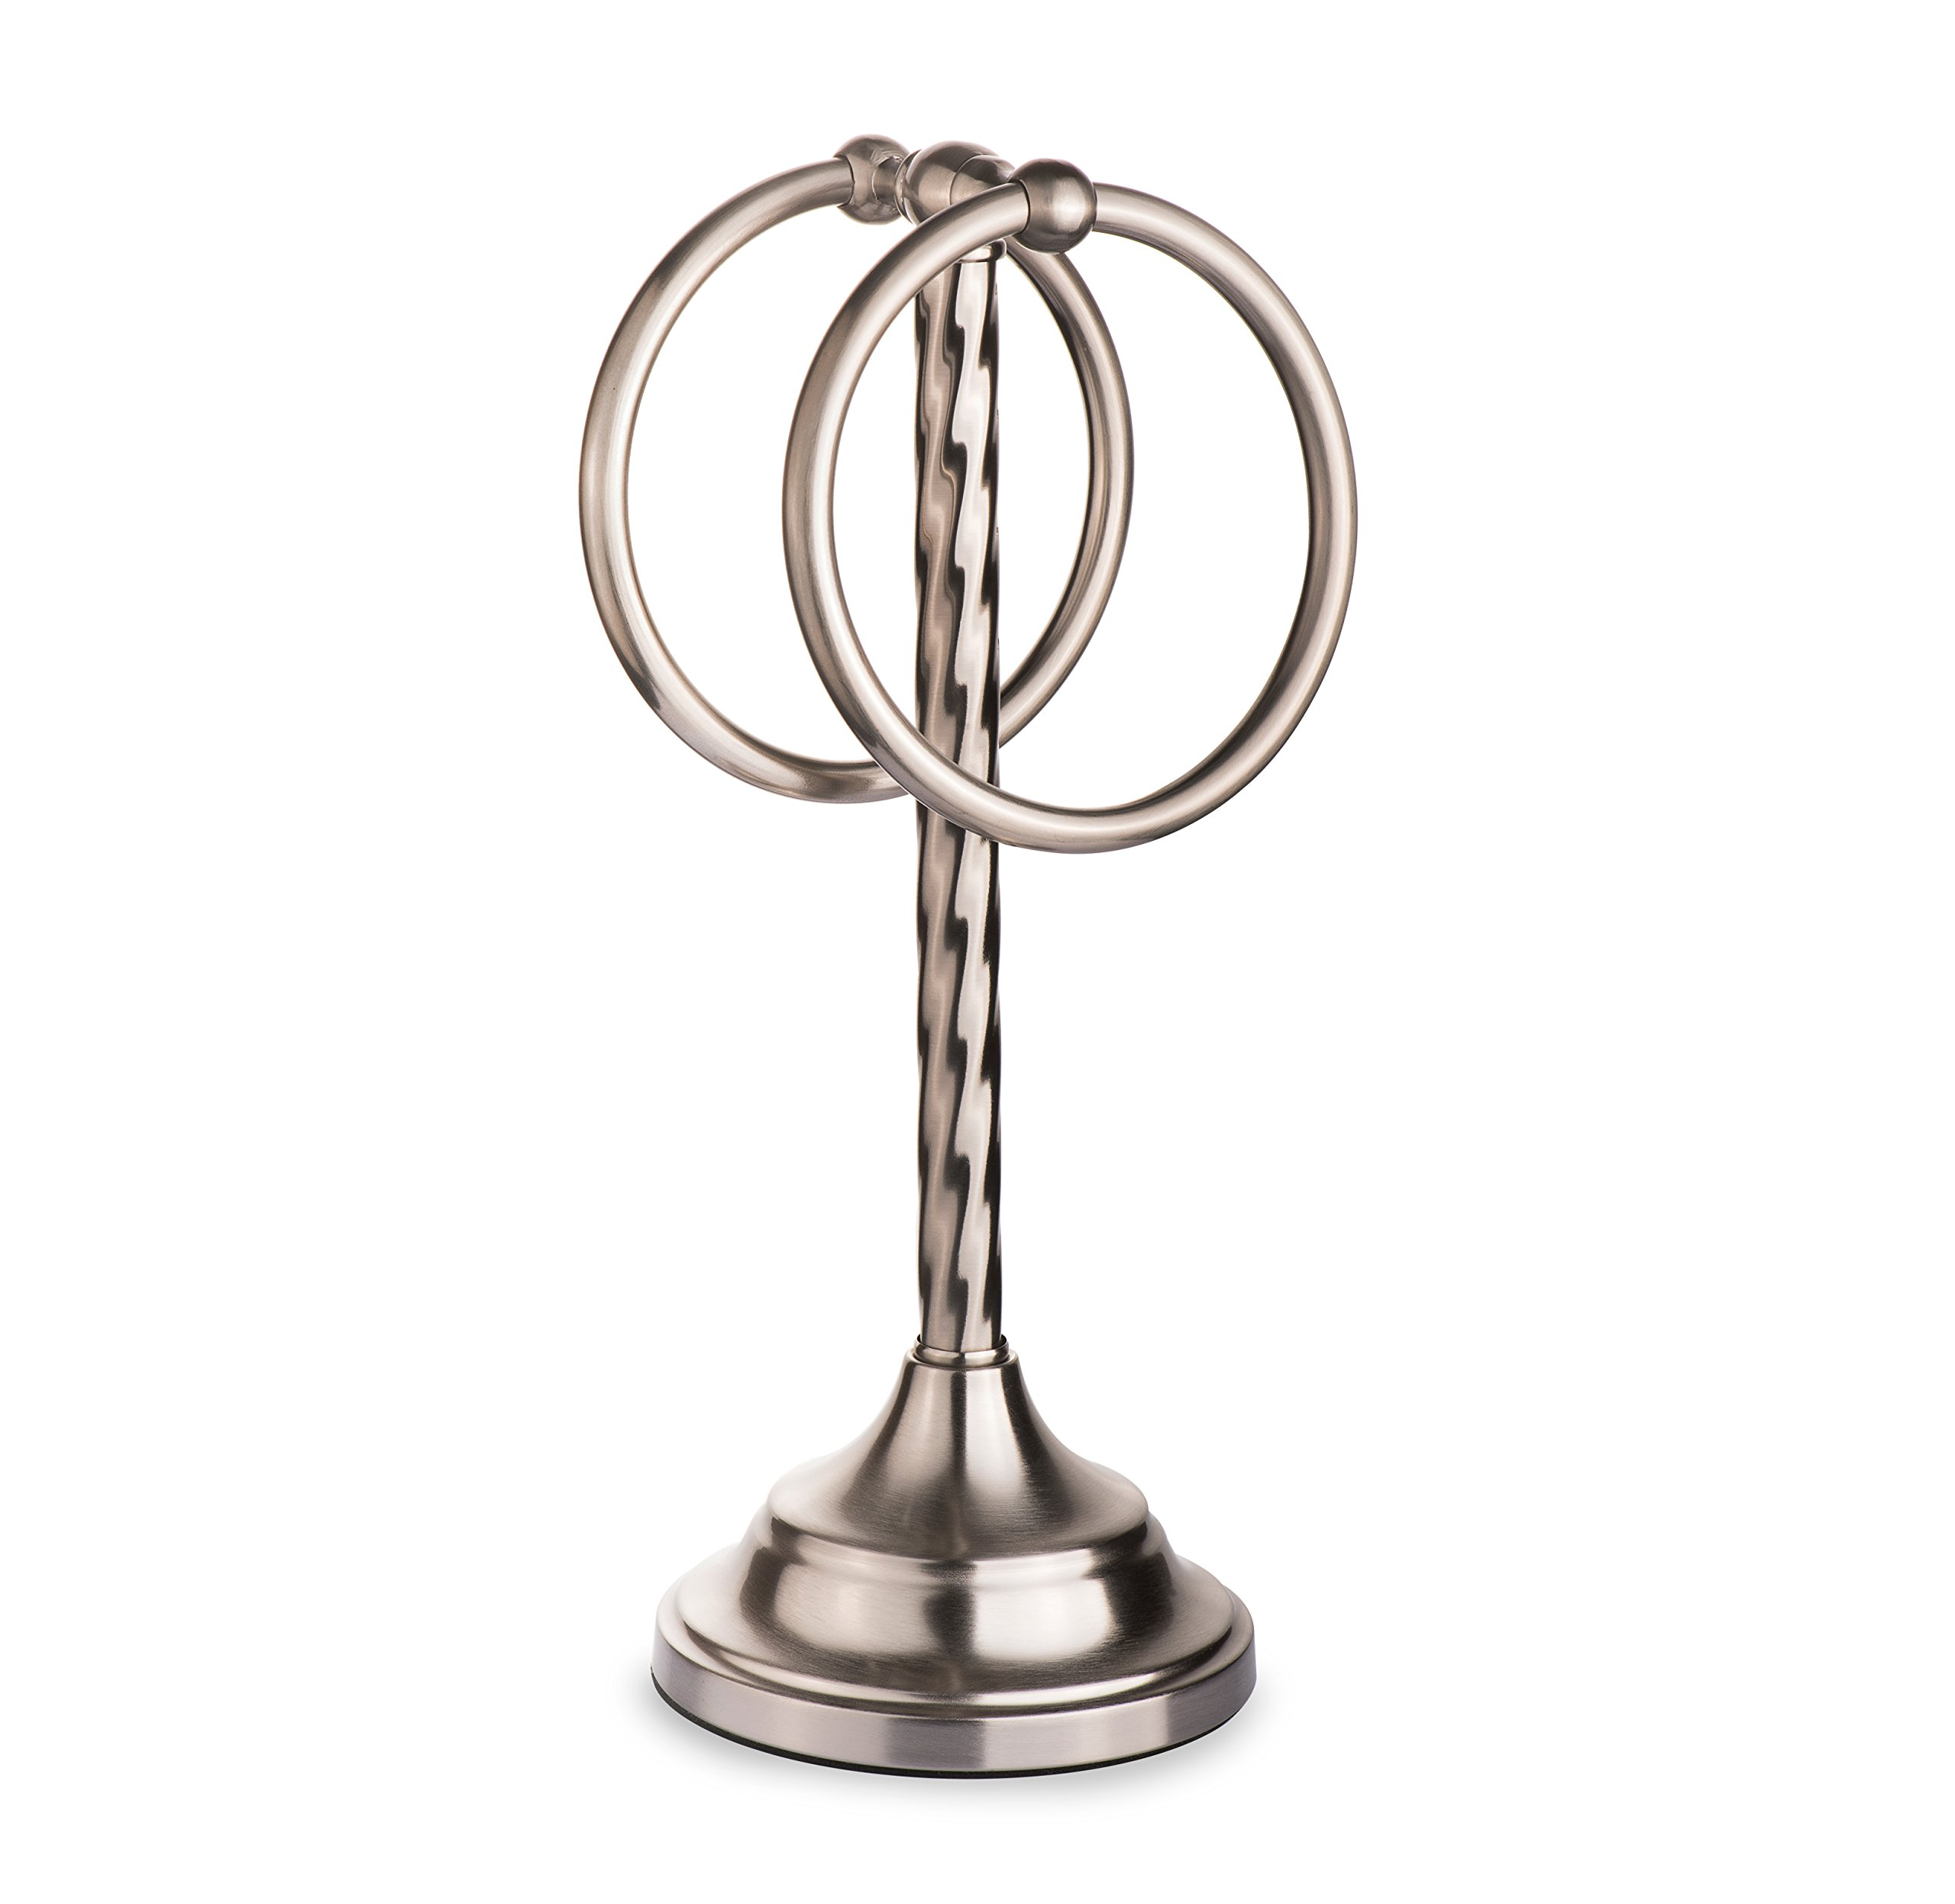 AMG and Enchante Accessories, Free Standing Fingertip Hand Towel Ring Modern Spiral Holder Tree Rack, TT100002 SNI, Satin Nickel